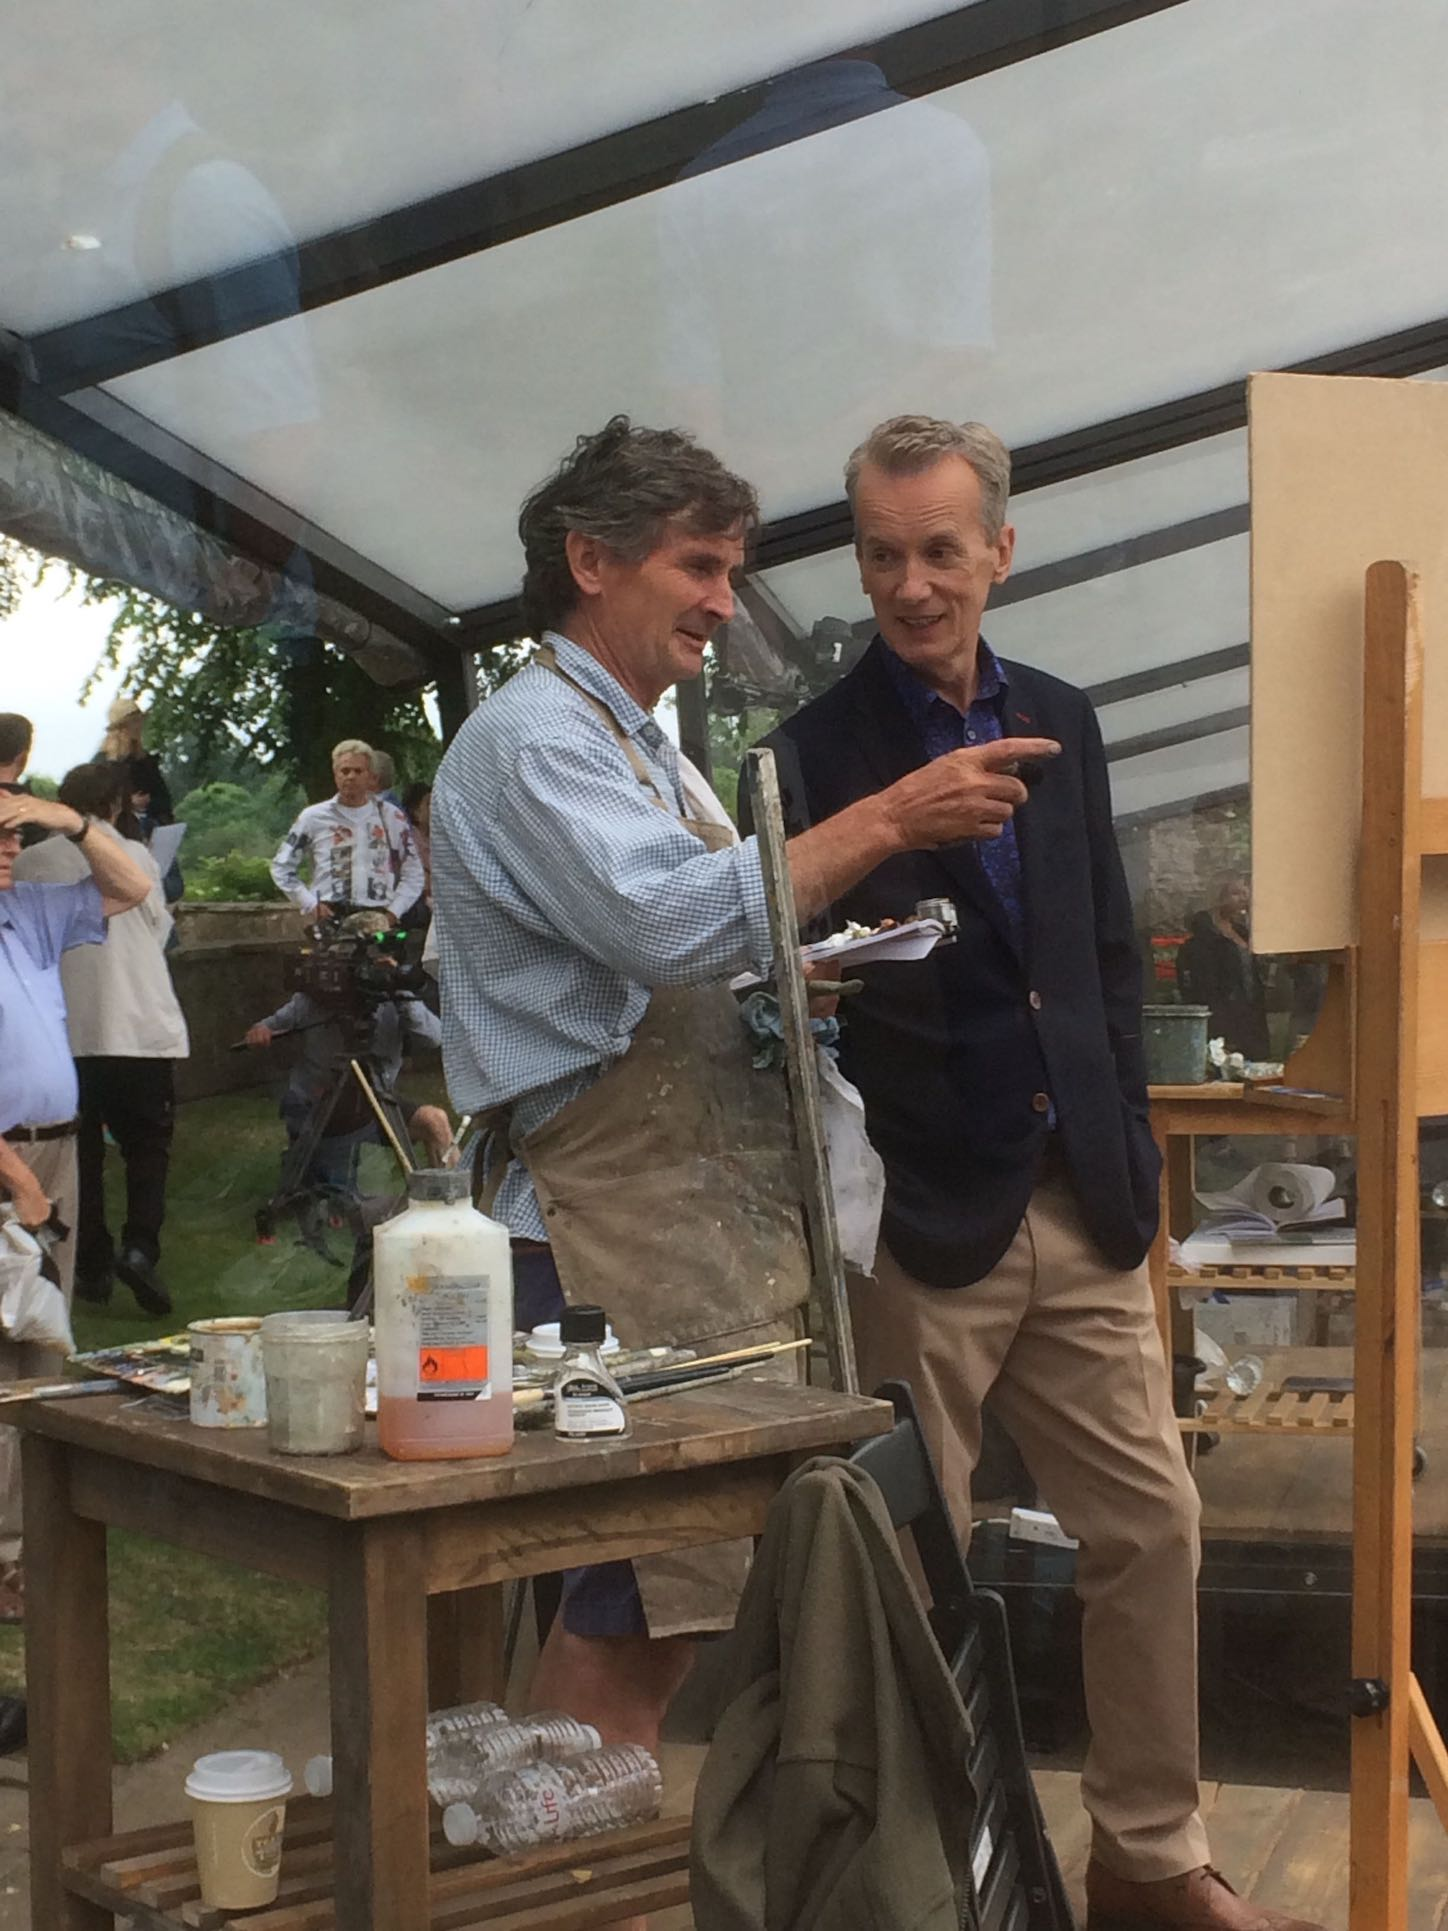 Michael Alford with Frank Skinner